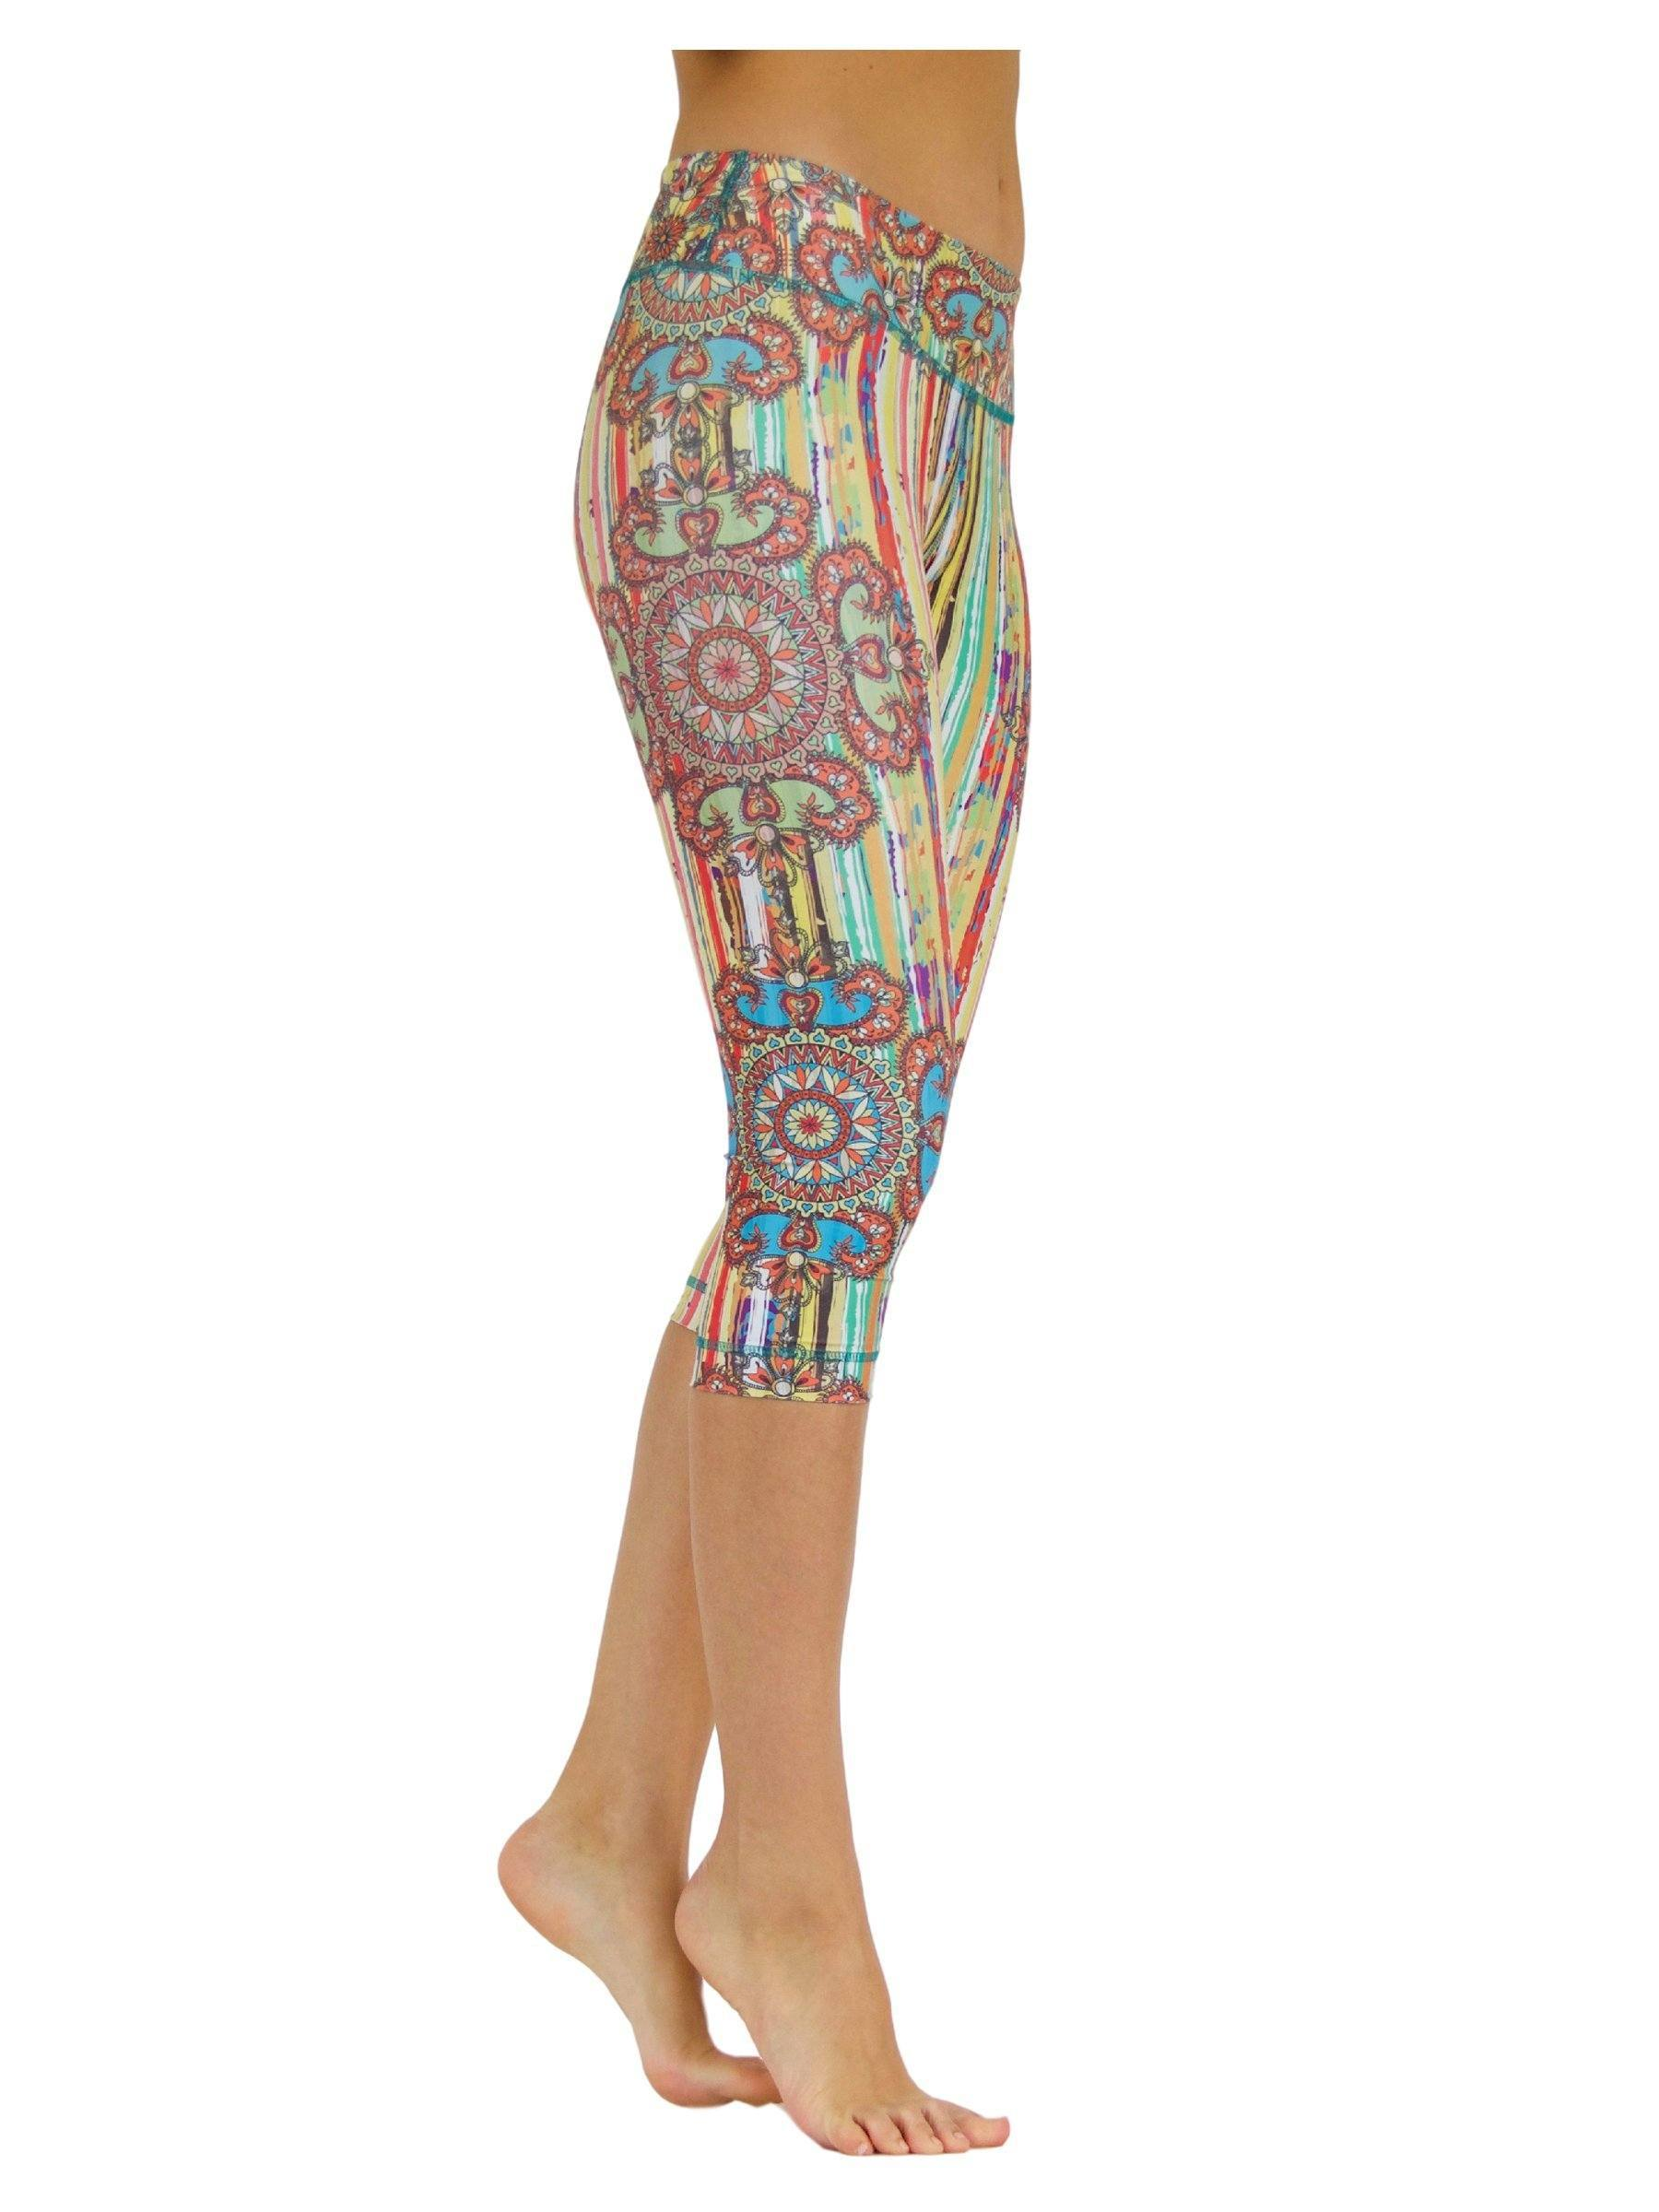 Circus by Niyama - High Quality, , Yoga Legging for Movement Artists.